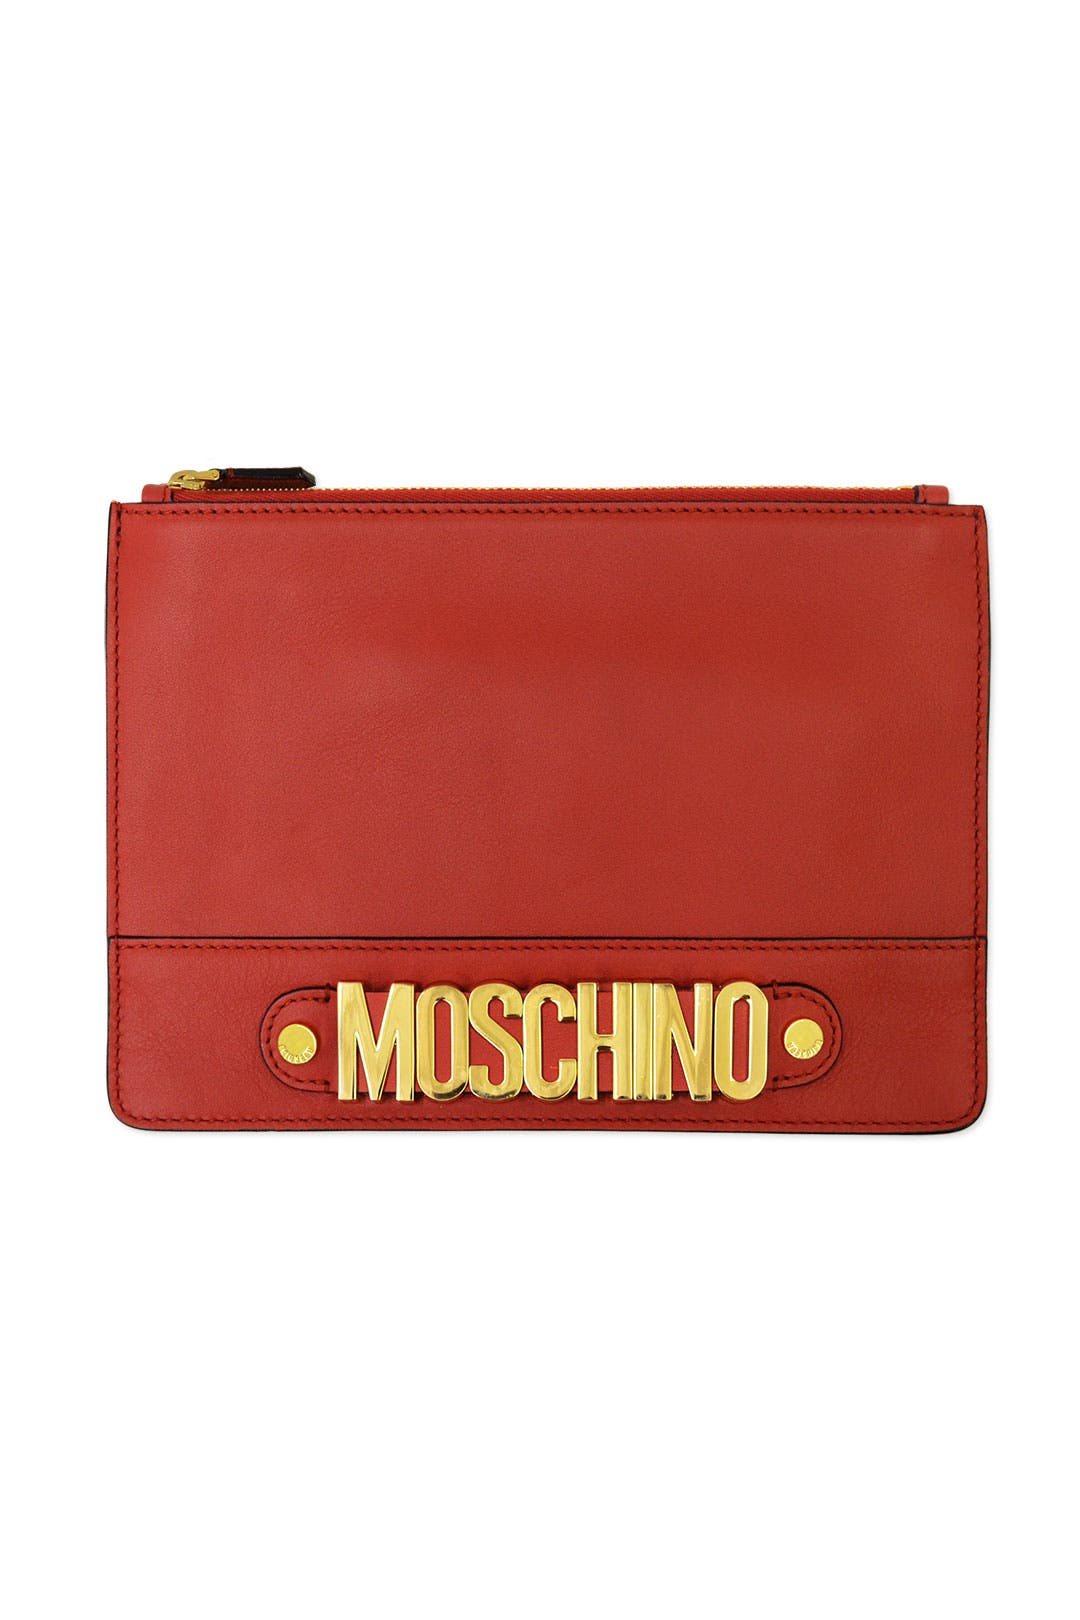 Zip it To Me Clutch by Moschino Accessories